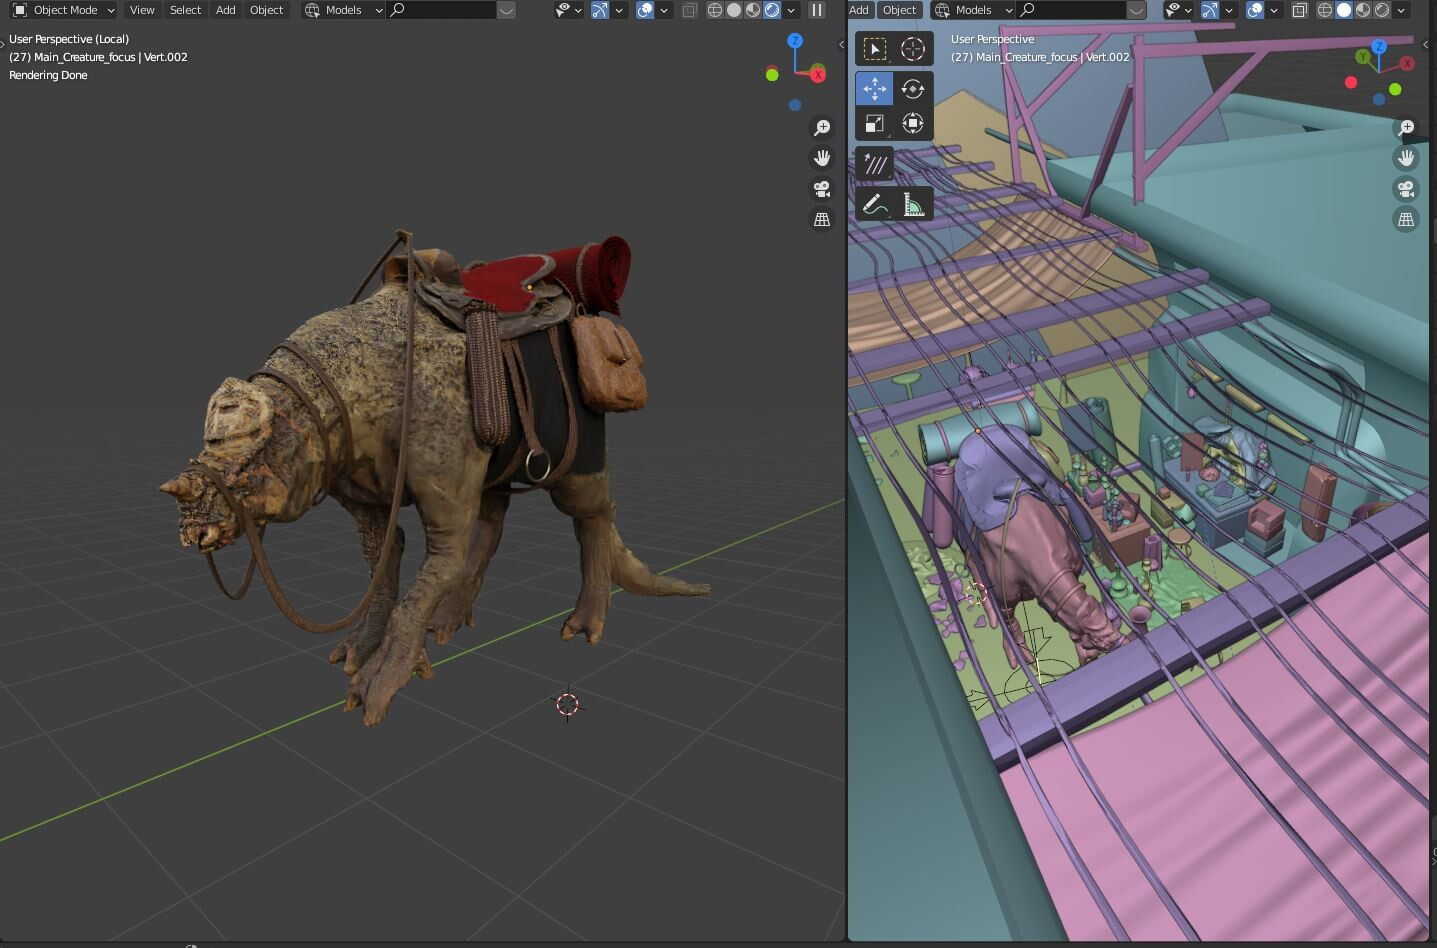 The camel / chameleon / triceratops thingy in it's early stages, it could use more details, but I decided not to make it entirely, and to use composition 2d methods to make it blend in with the scene, saving a huge time